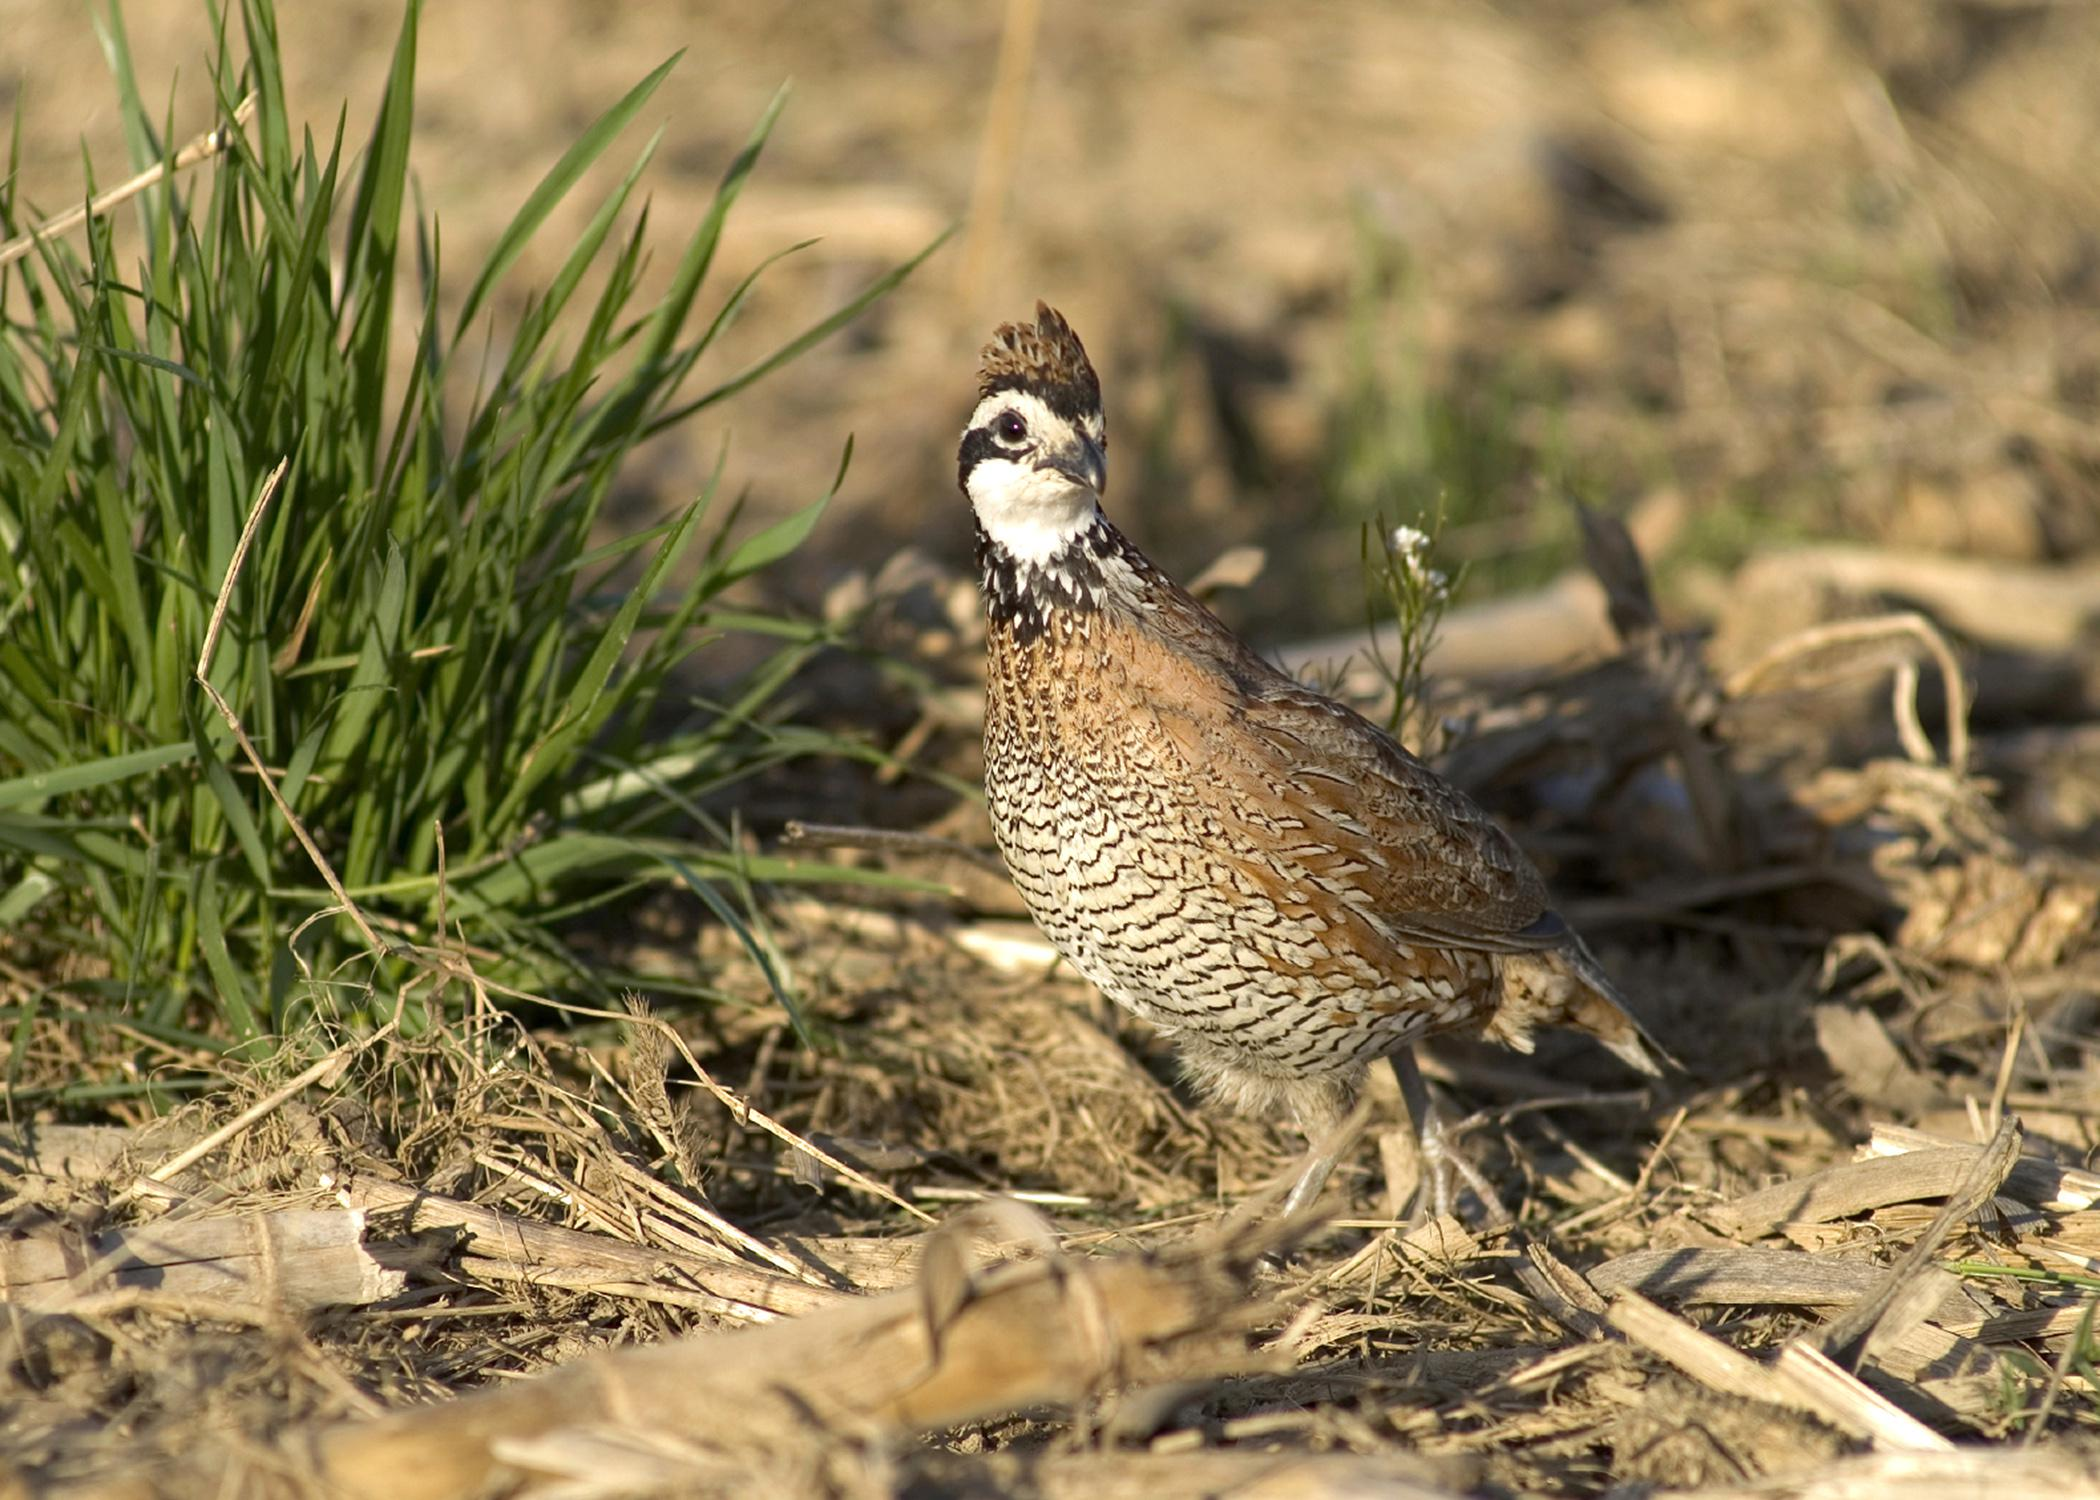 The conservation practice known as CP33 is showing significant results in increasing the bobwhite quail population of the state. (Photo by MSU University Relations/Russ Houston)